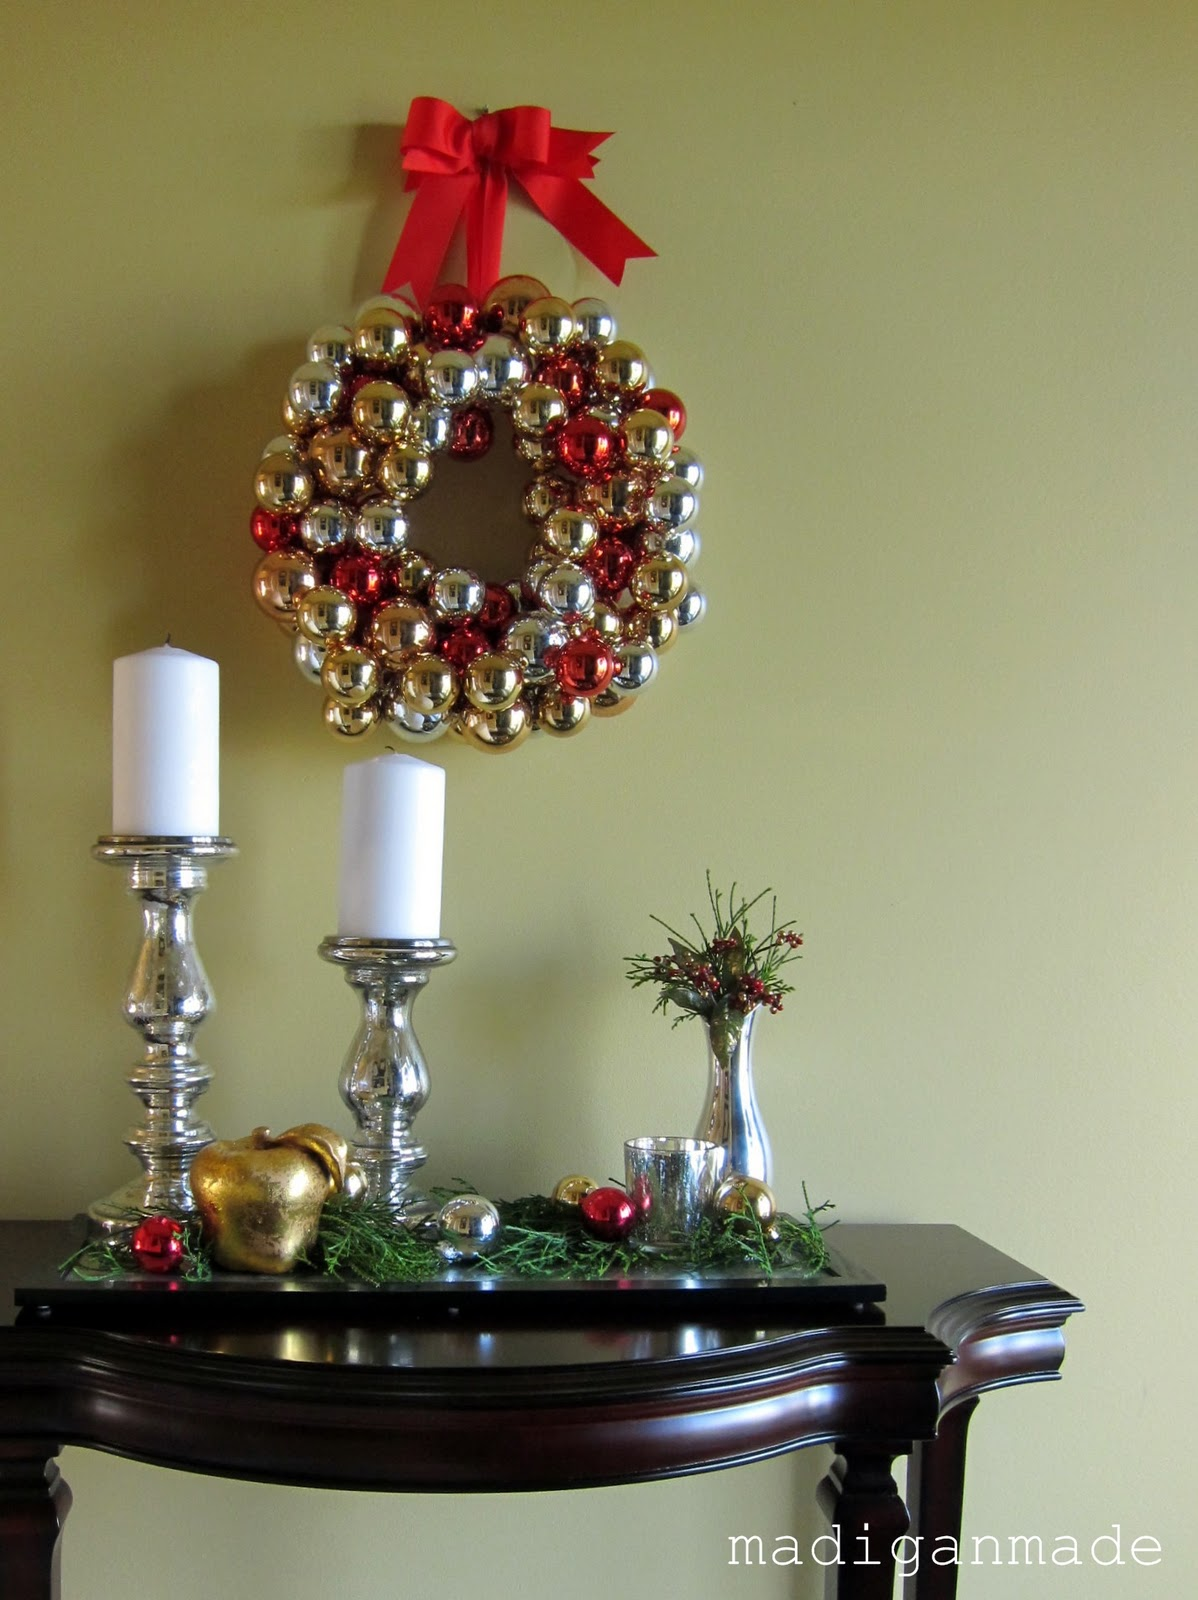 How to make an ornament wreath - Rosyscription